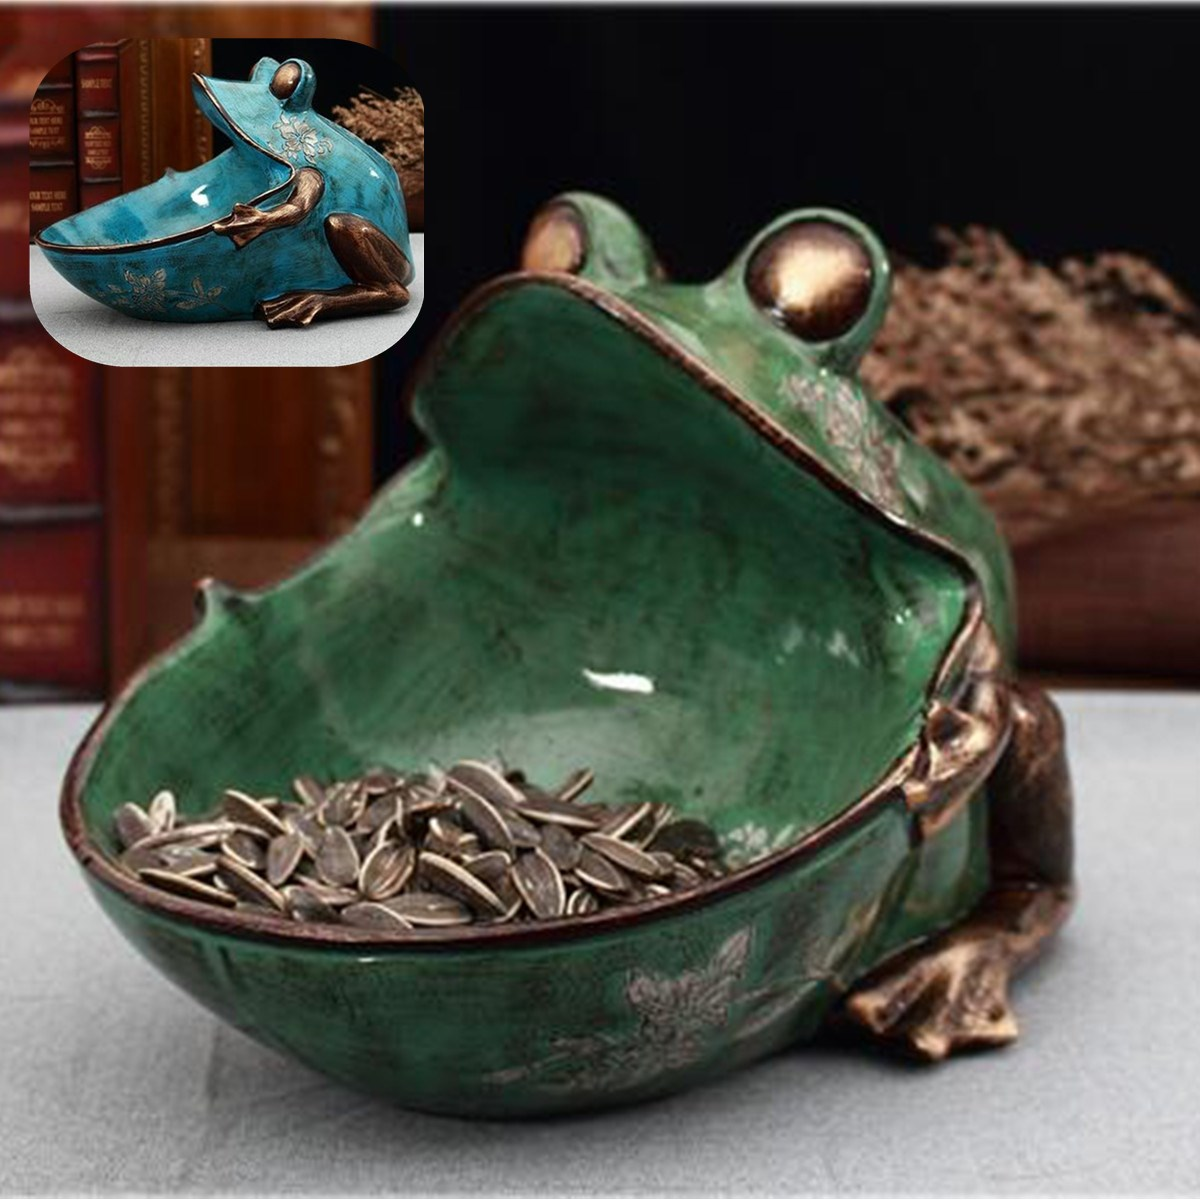 Creatives Resin Frogs Statue Storage Box Home Decor Crafts Room Decoration Vintage Parlor Frogs Snack Boxes Ornament FigurineCreatives Resin Frogs Statue Storage Box Home Decor Crafts Room Decoration Vintage Parlor Frogs Snack Boxes Ornament Figurine